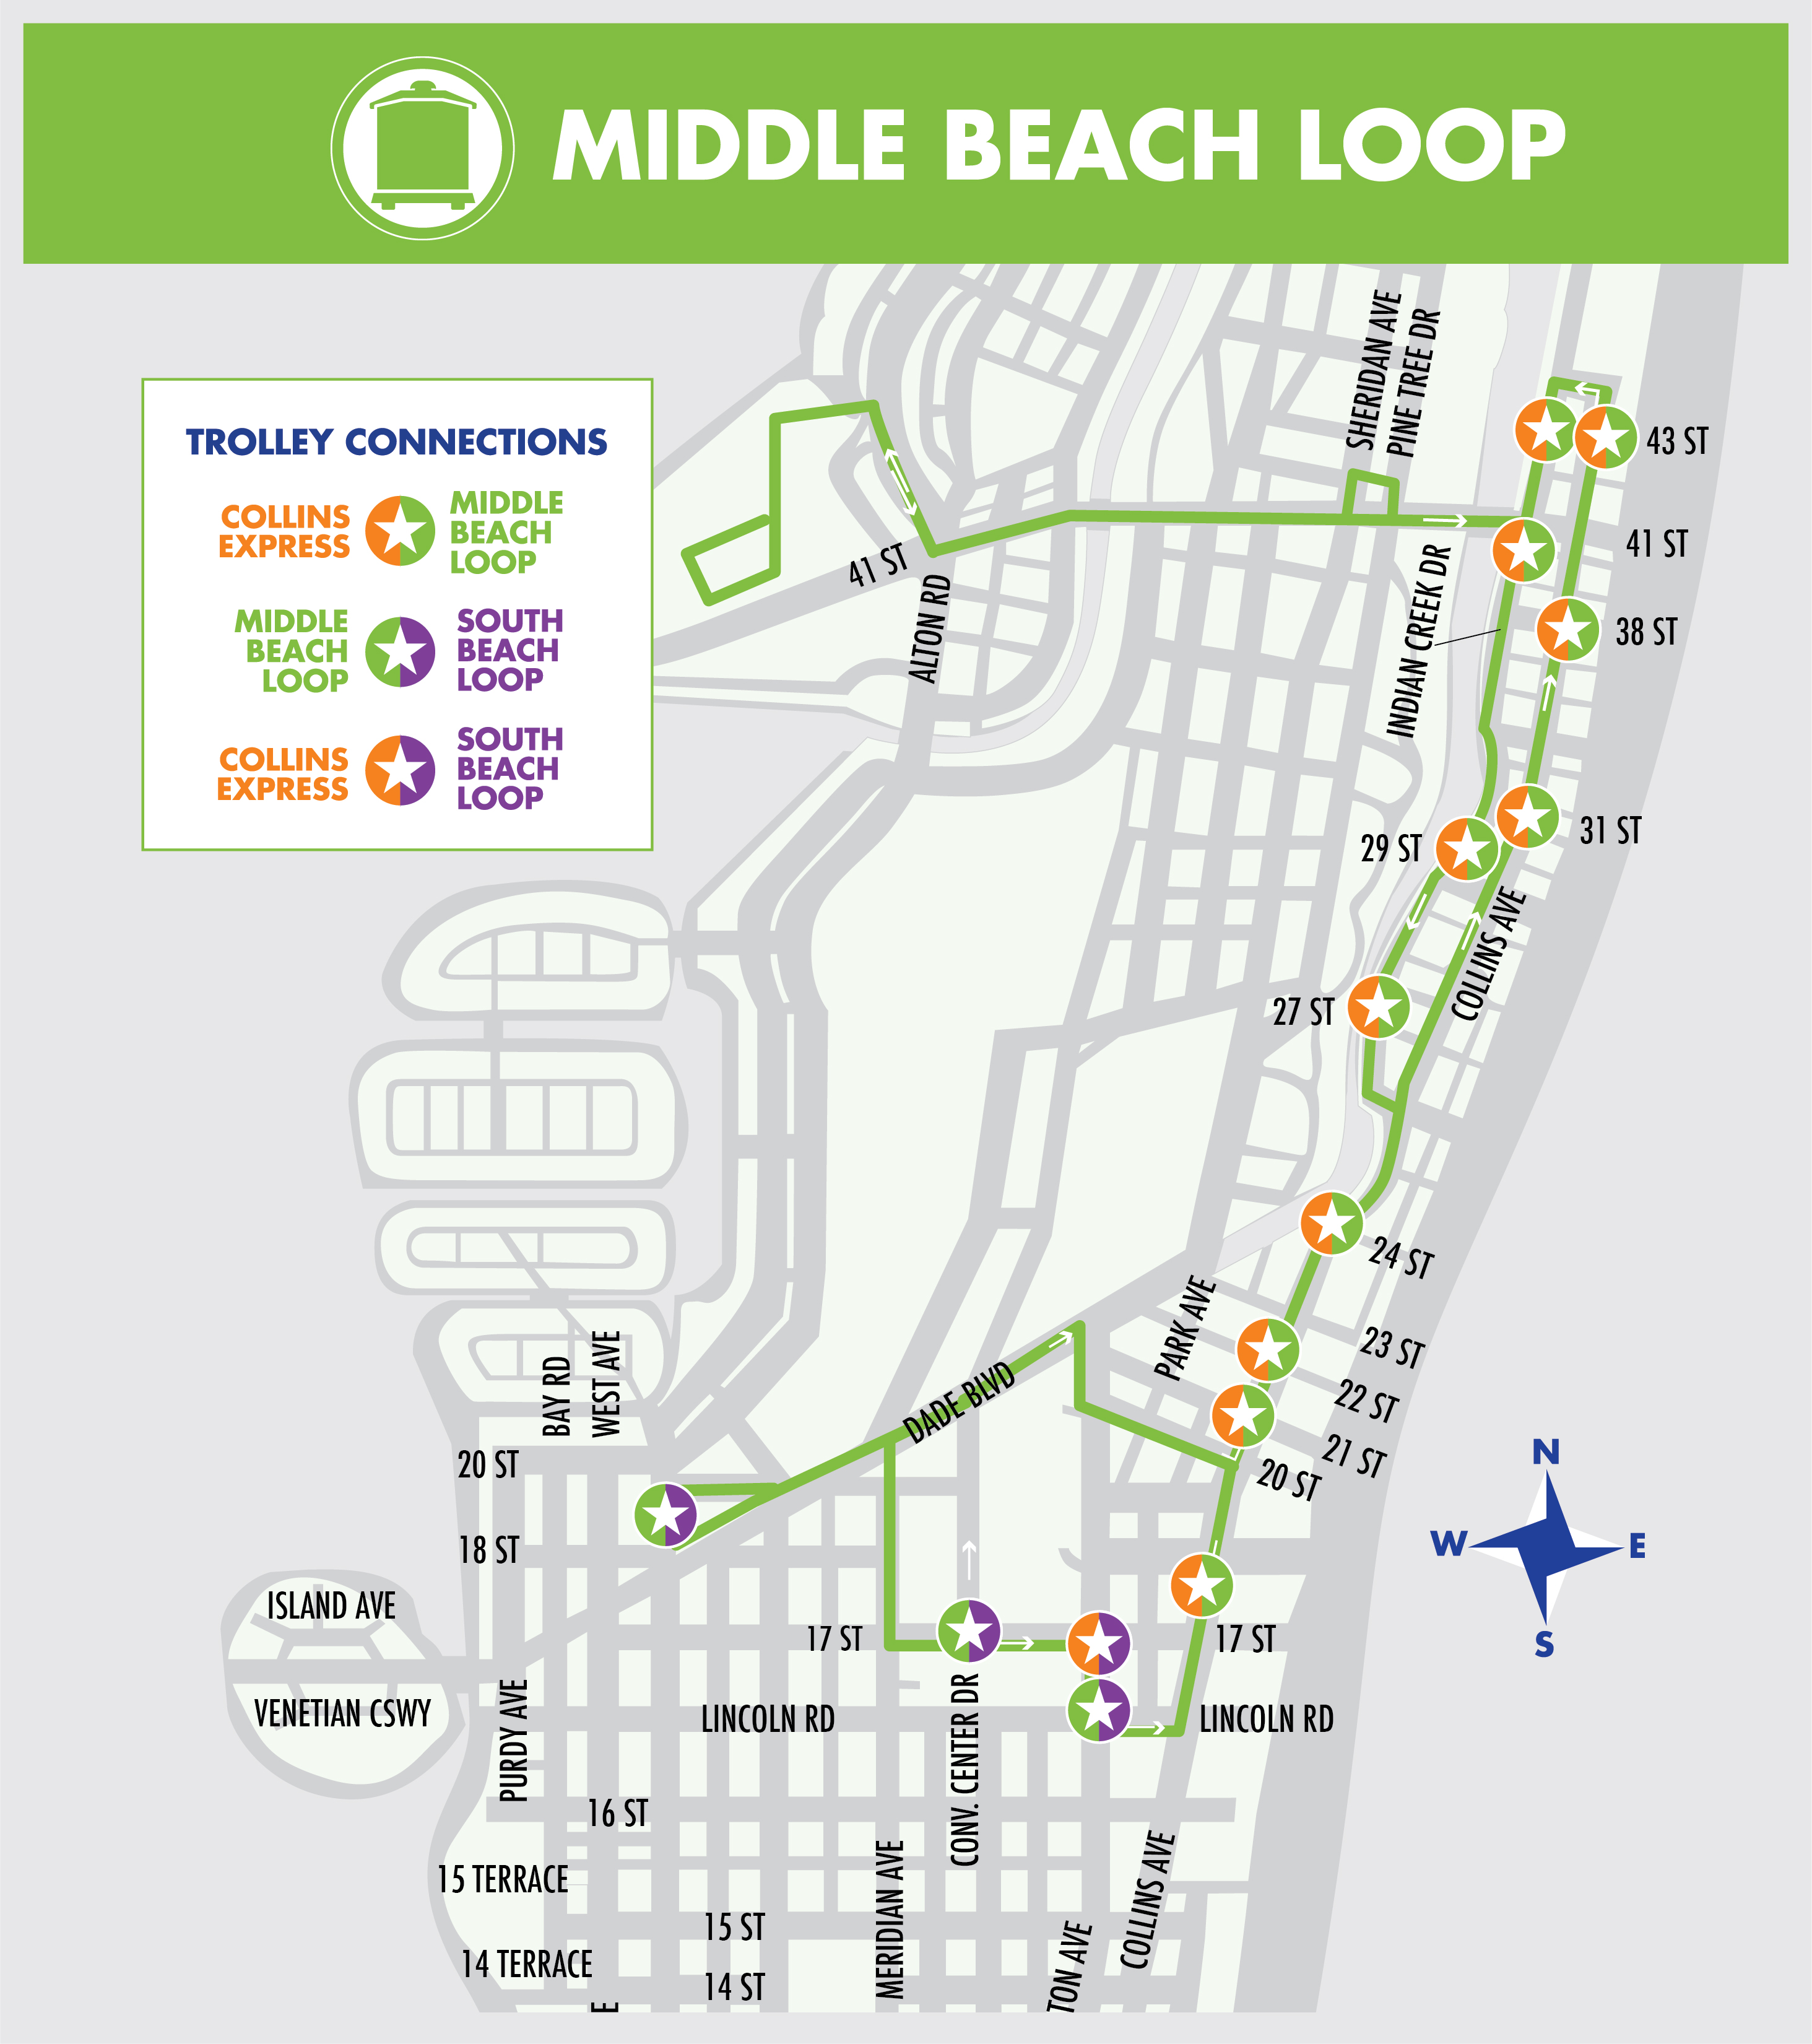 Middle Beach Loop | City of Miami Beach on seminole zoning map, city of miami history, city of miami building permits, miami city limits map, city of miami historic preservation, collier county zoning map, city of south miami, city of miami parks, coral gables zoning map, miami fl city map, city of miami commercial map, town of miami lakes map, martin county zoning map, city of miami demographics, manatee county zoning map, city of cooper city florida, city of miami trolley schedule, zone map, treasure coast florida map, city of miami points of interest,